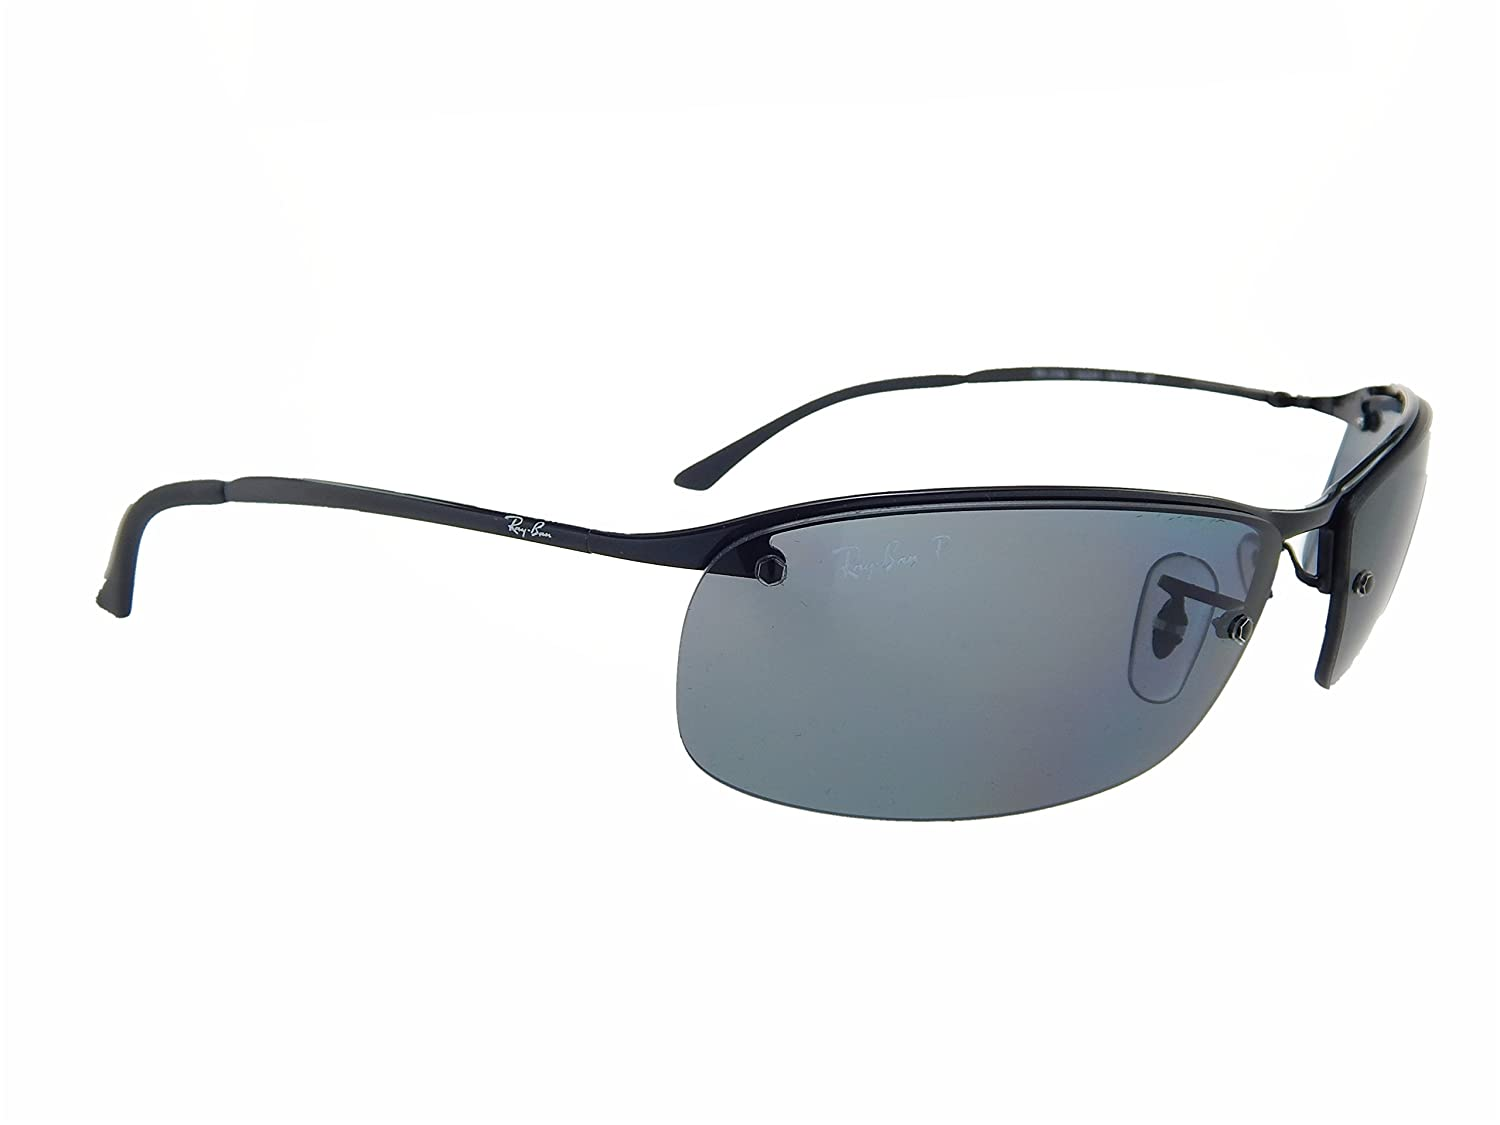 91497abb873acf Amazon.com  New Ray Ban RB3183 002 81 Black  Grey Gradient 63mm Polarized  Sunglasses  Clothing